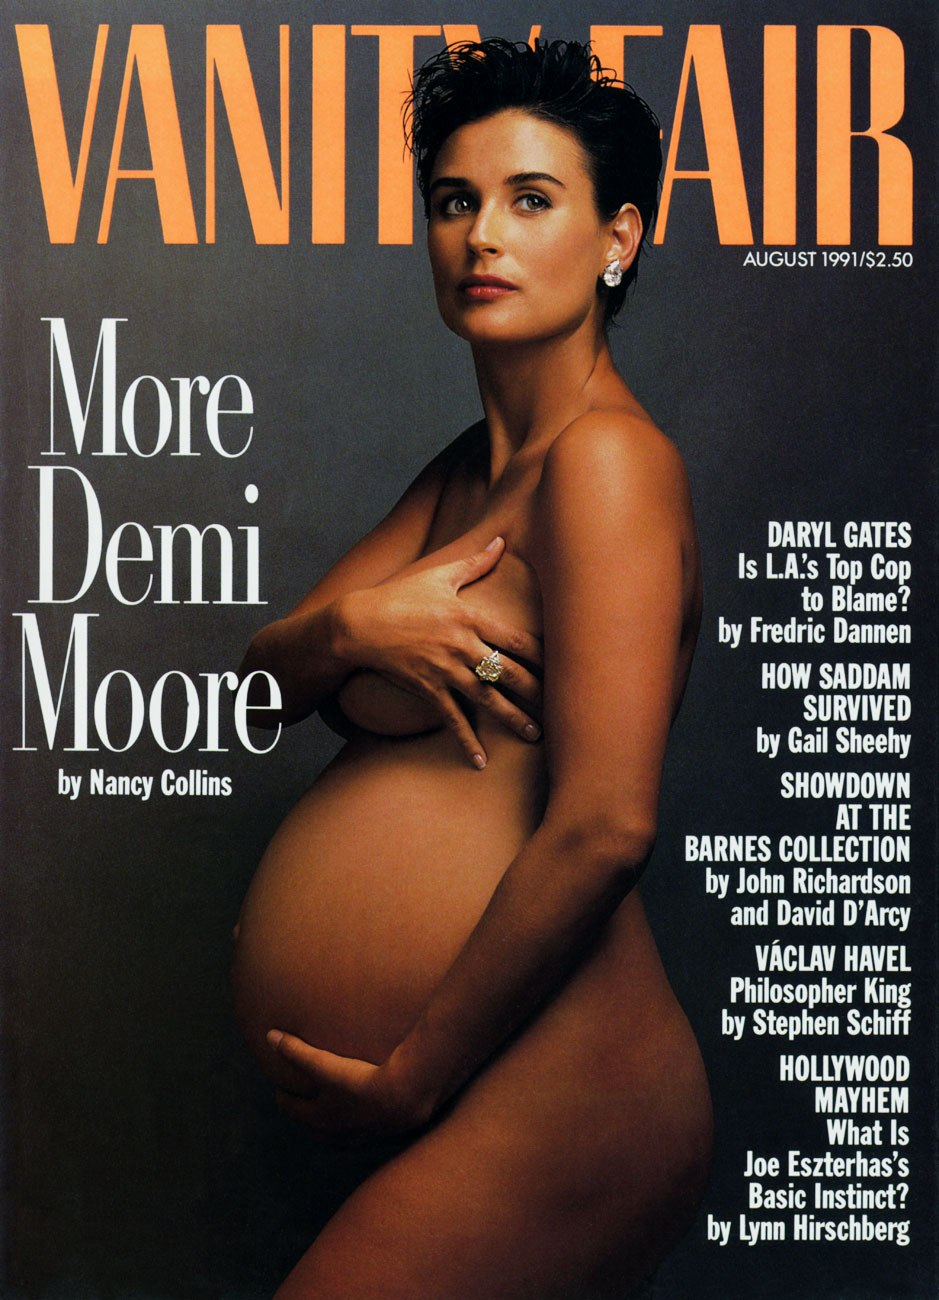 item1.rendition.slideshowVertical.annie-leibovitz-demi-moore-master-set-wexner-center-ss03